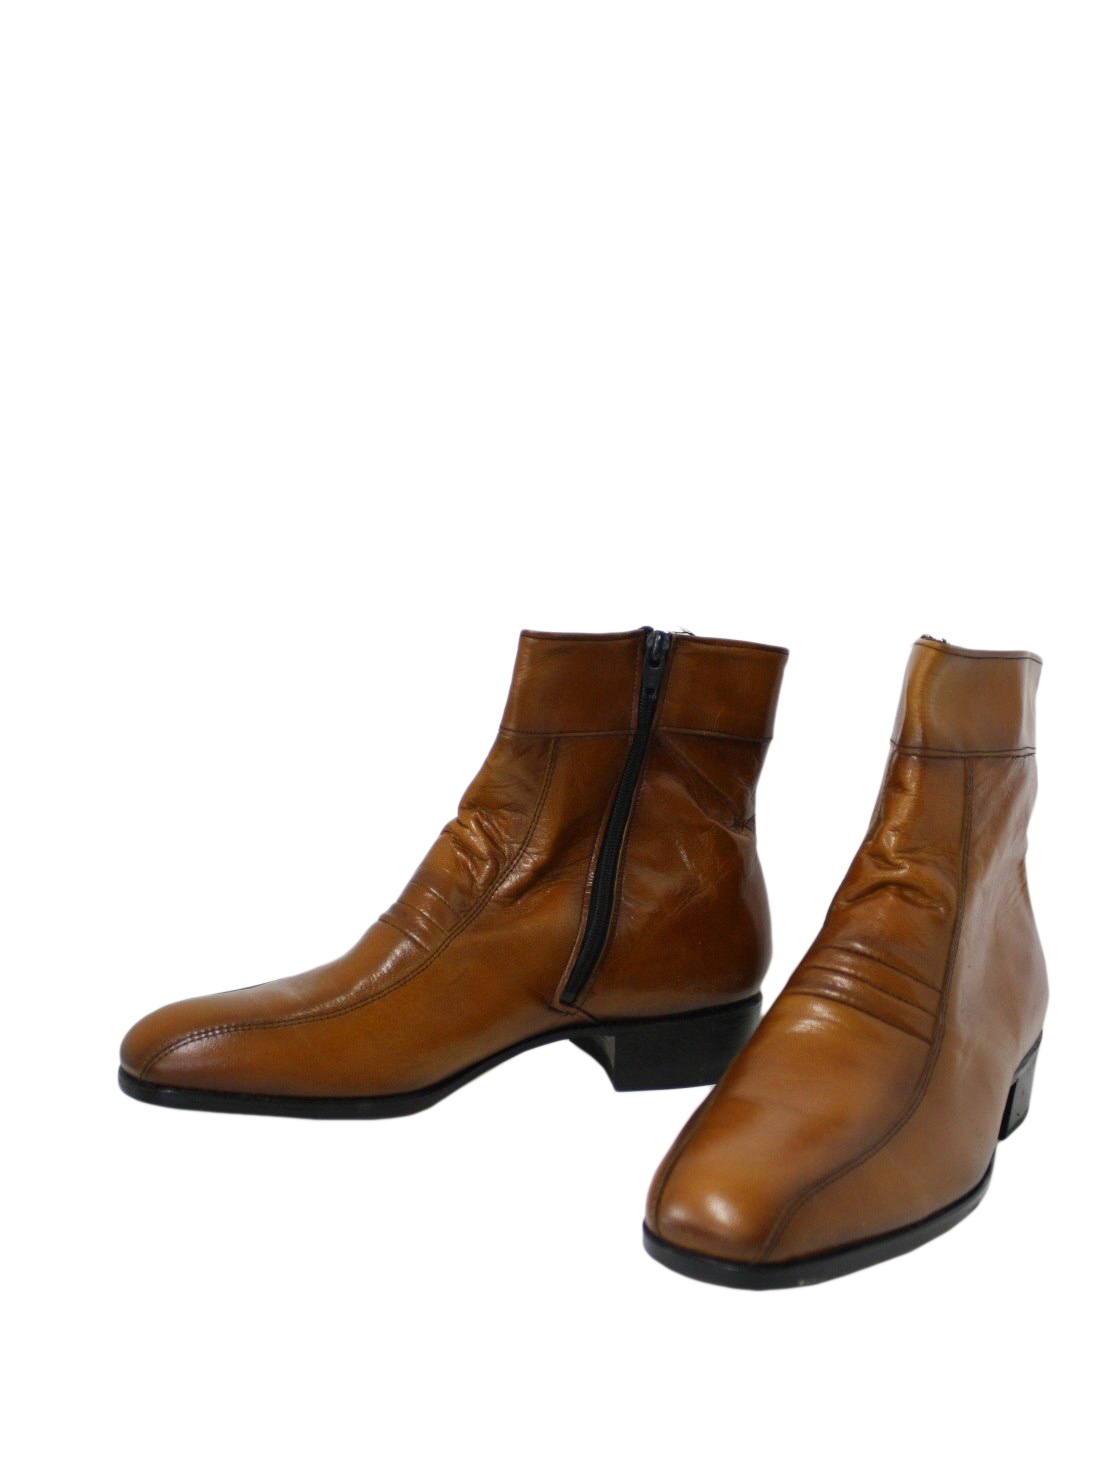 6f18e5295df 1970's Stacy Adams Mens Shoes Chelsea or Beatle Ankle Boots